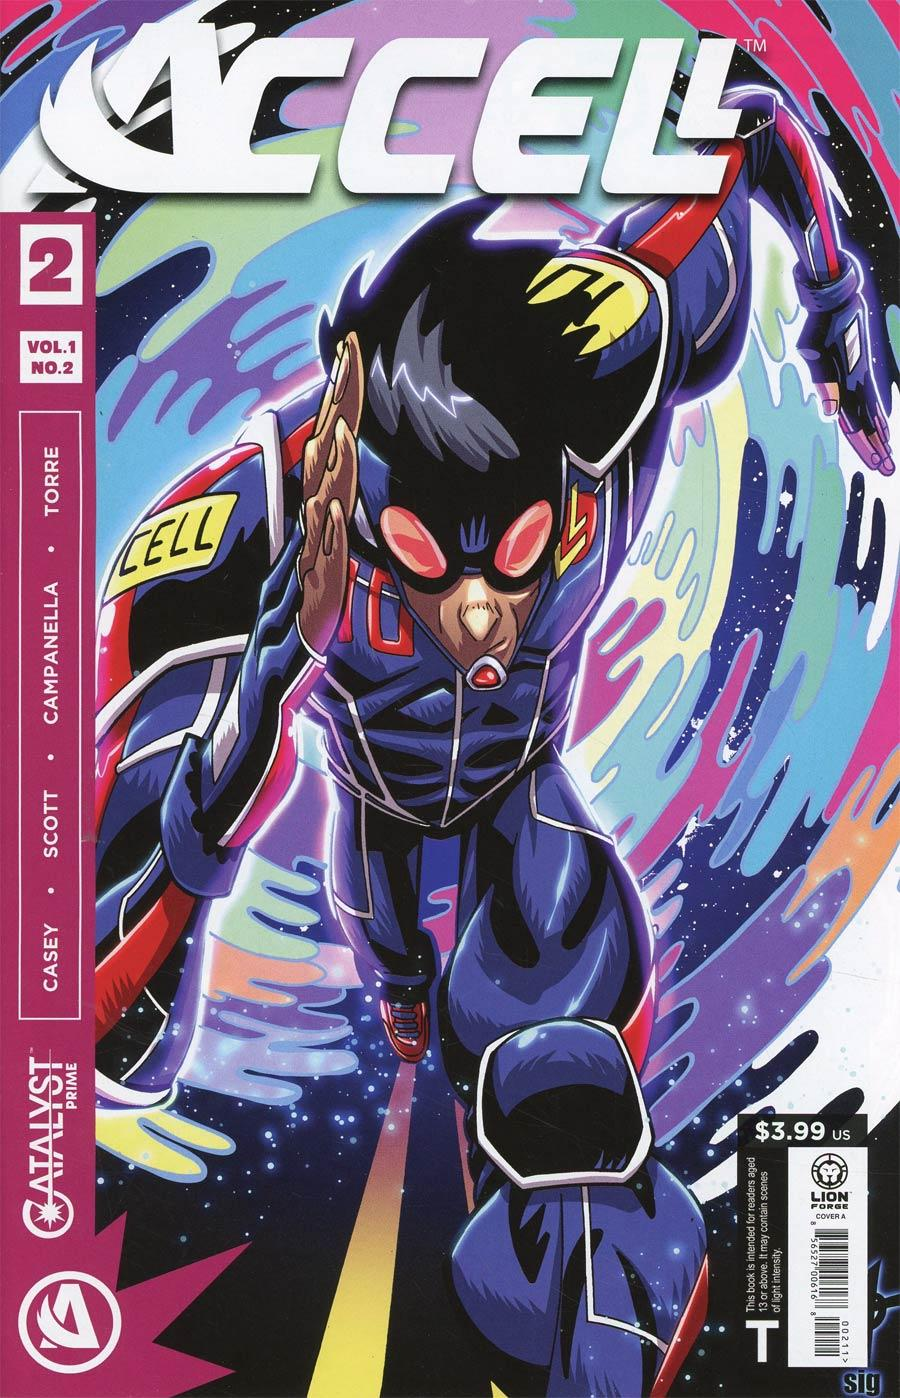 Catalyst Prime Accell Vol. 1 #2